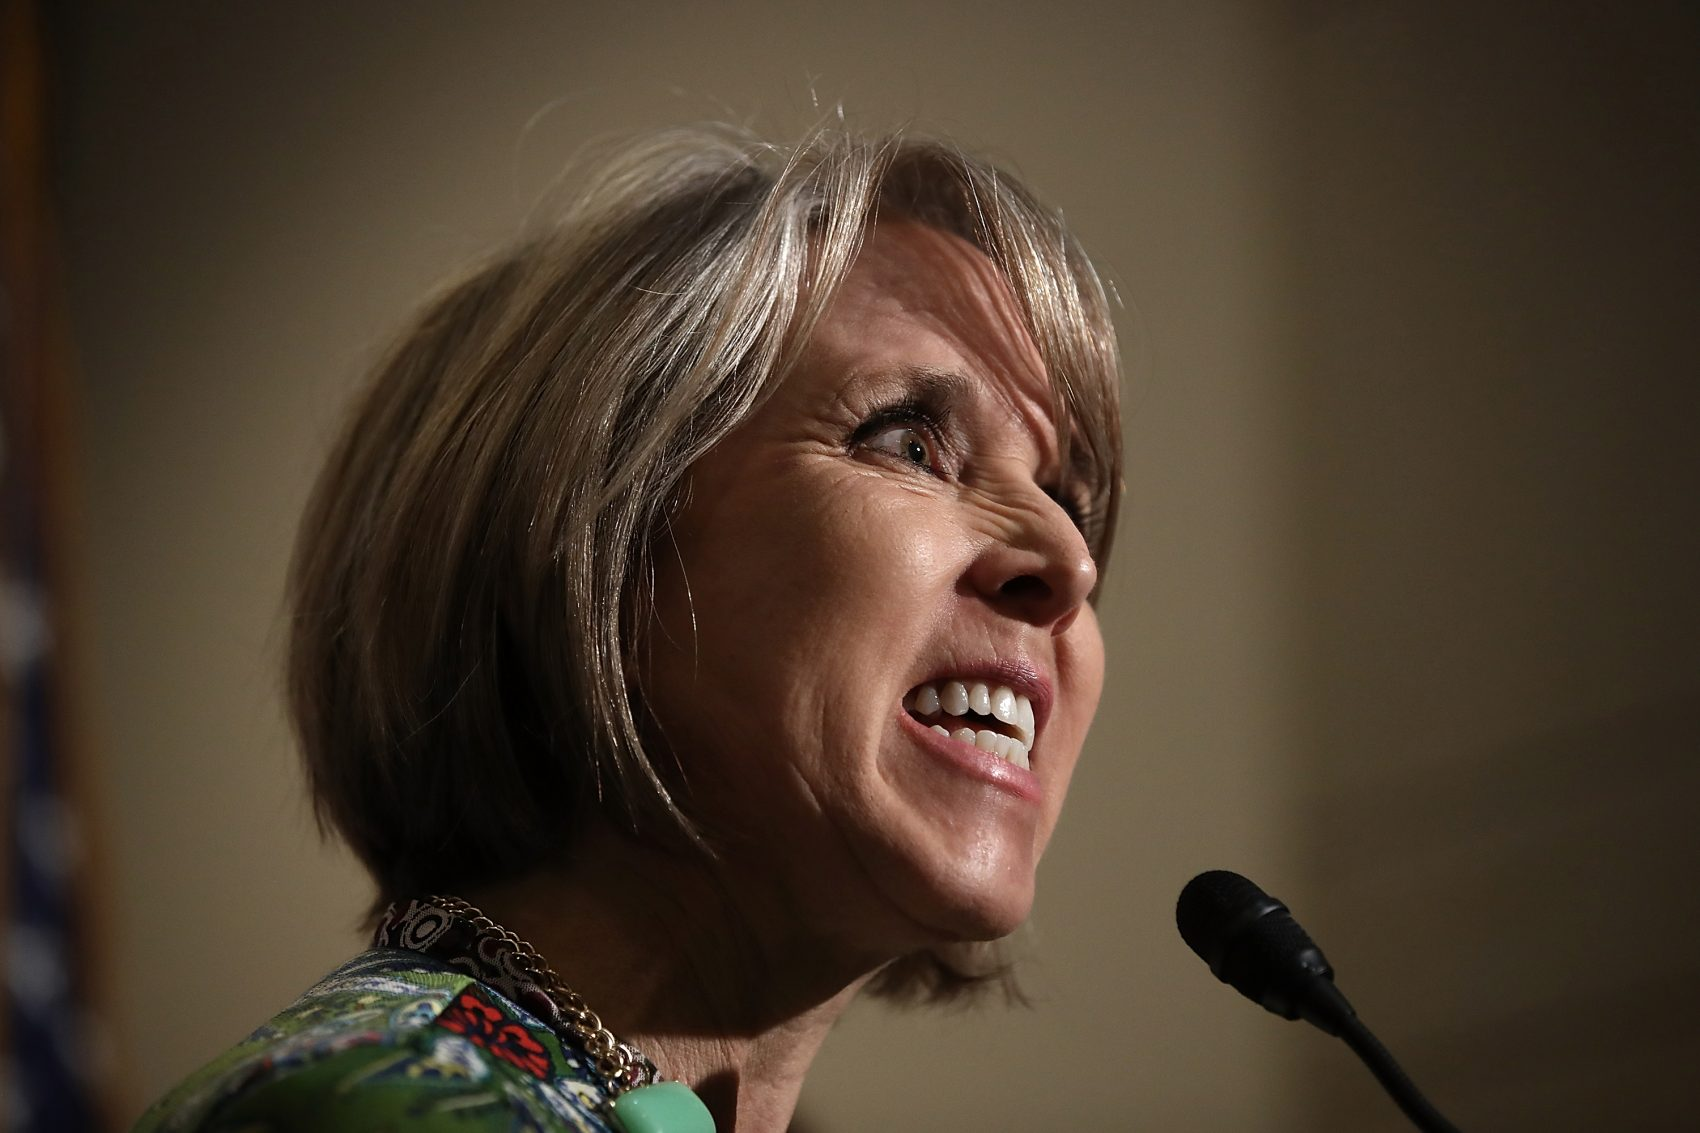 Image for Immigration Talks Like Threading 'Tiny' Needle 'Using A Rope,' Rep. Lujan Grisham Says Article